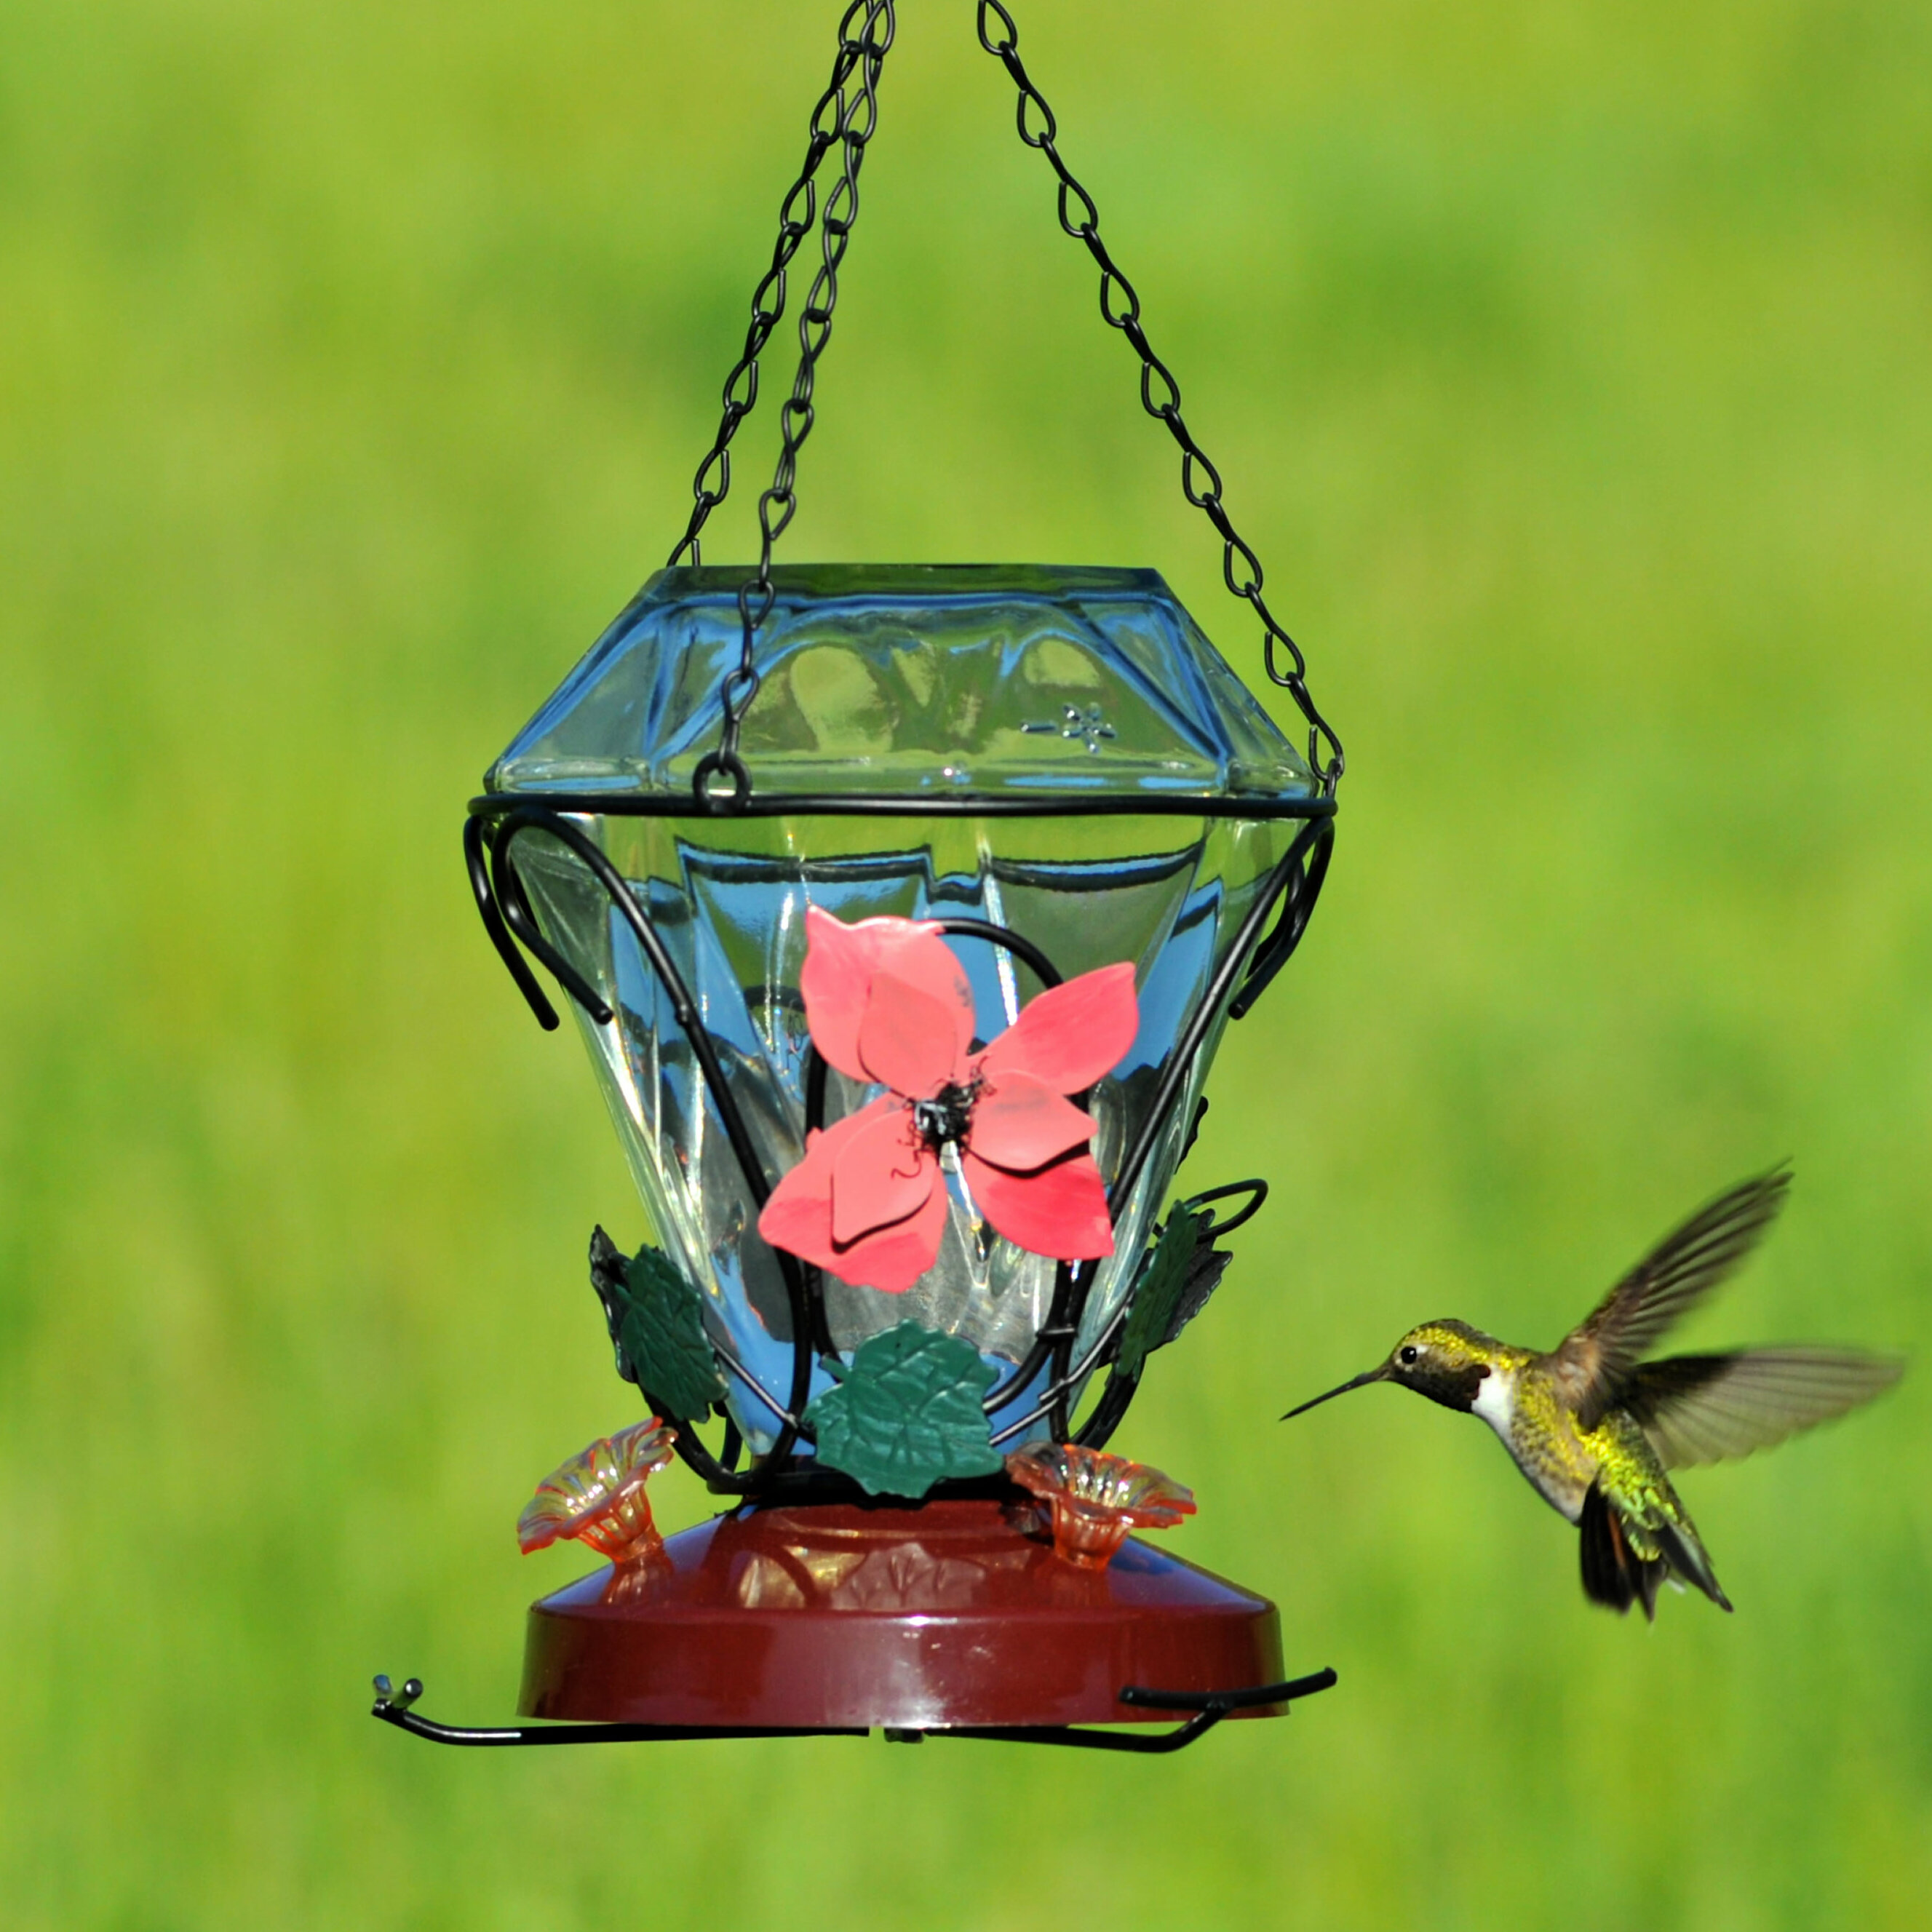 premium glass natures bird product blown home nectar products ounces and unique rave yellow hummingbird reviews pet with by hand birds feeders of decorative best feeder globe red hummingbirds